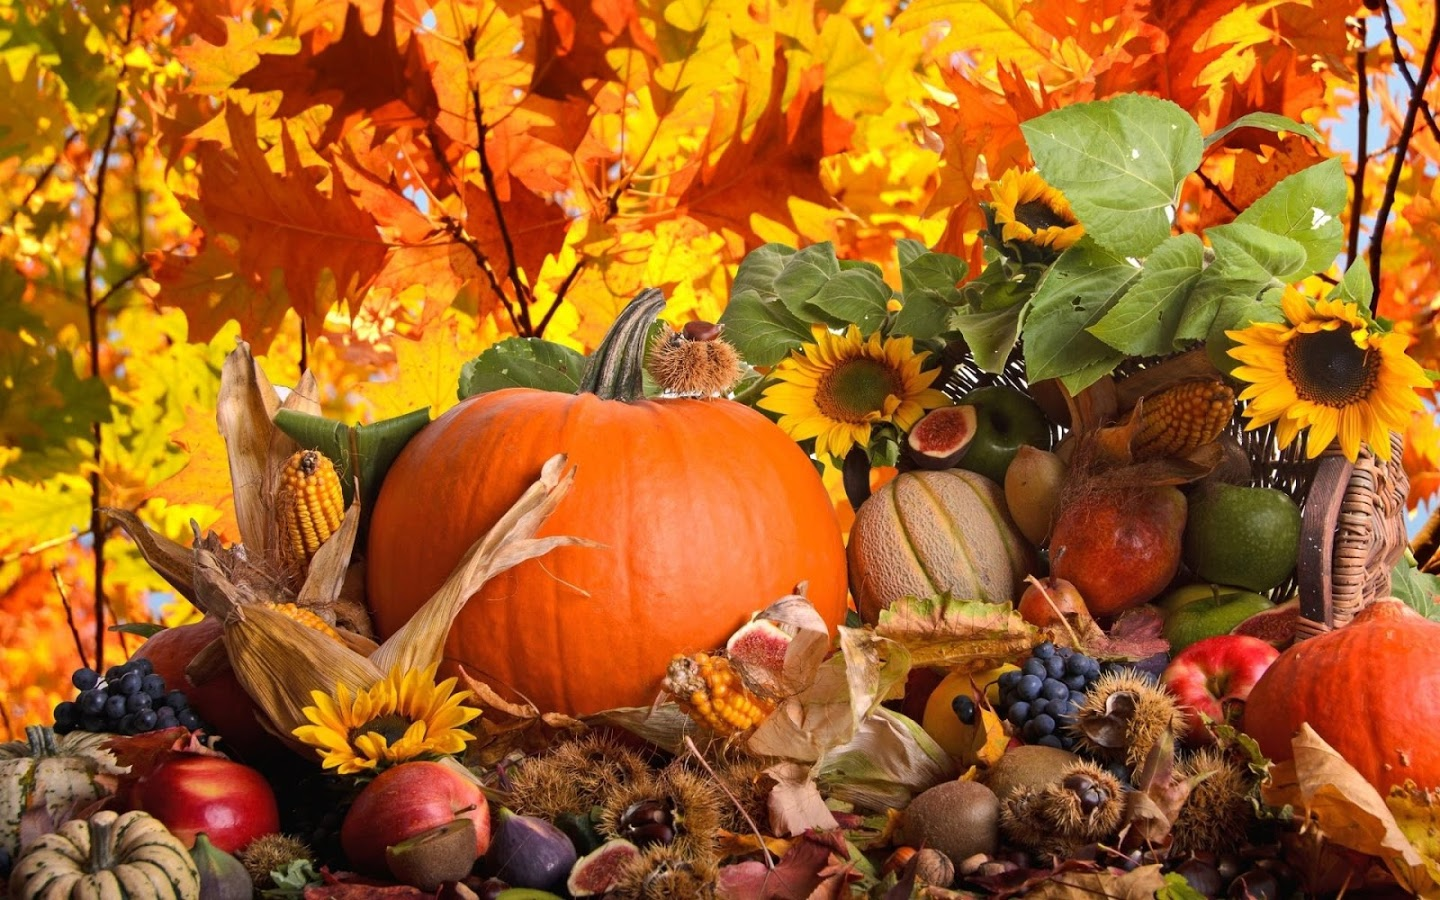 Thanksgiving Day Wallpaper - Android Apps on Google Play